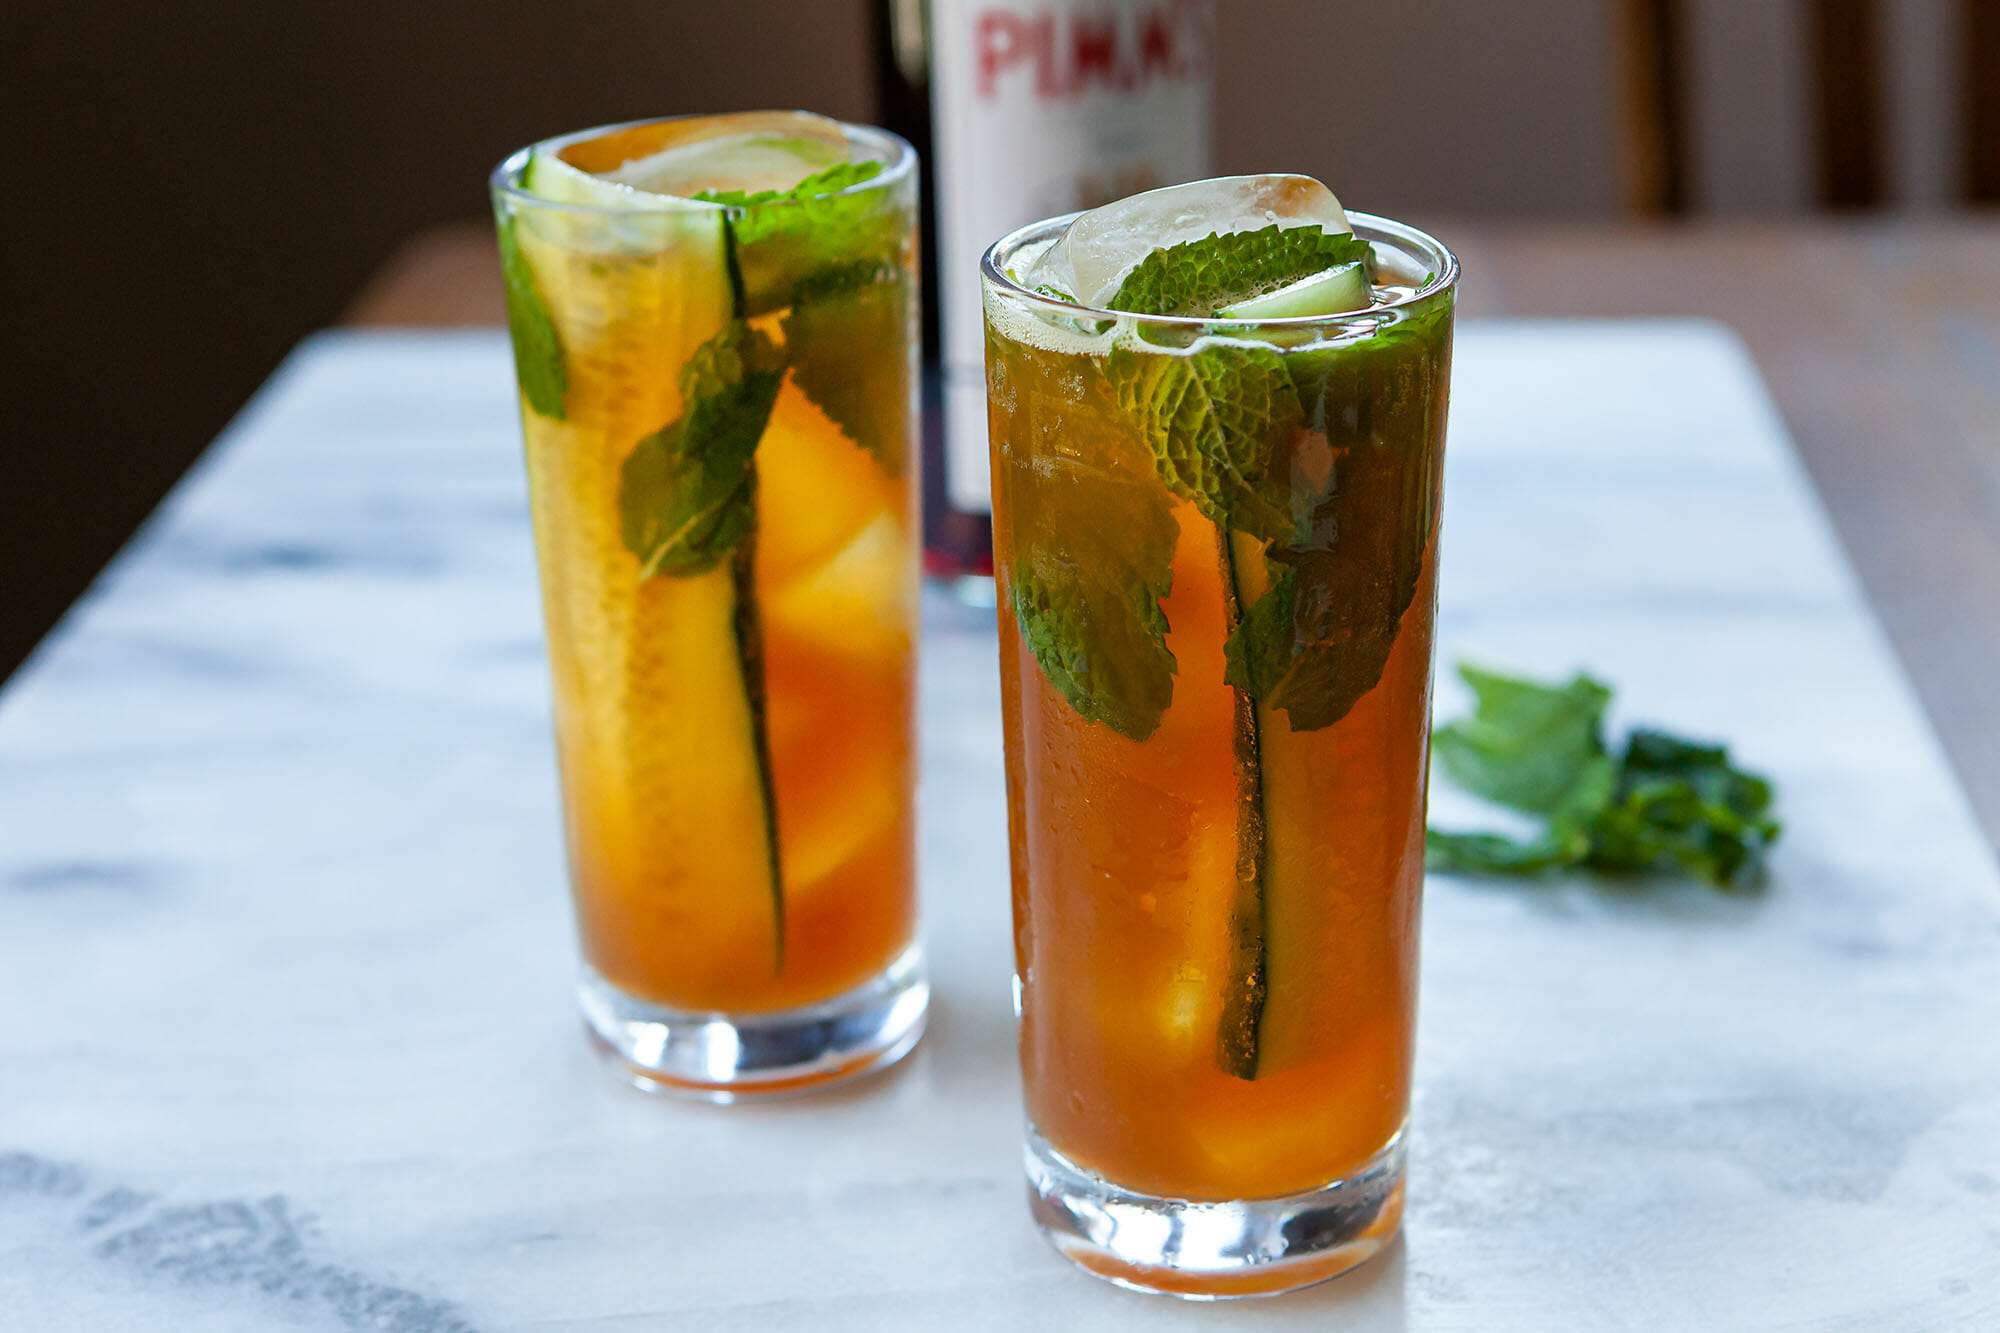 Two glasses of Pimm's cocktails